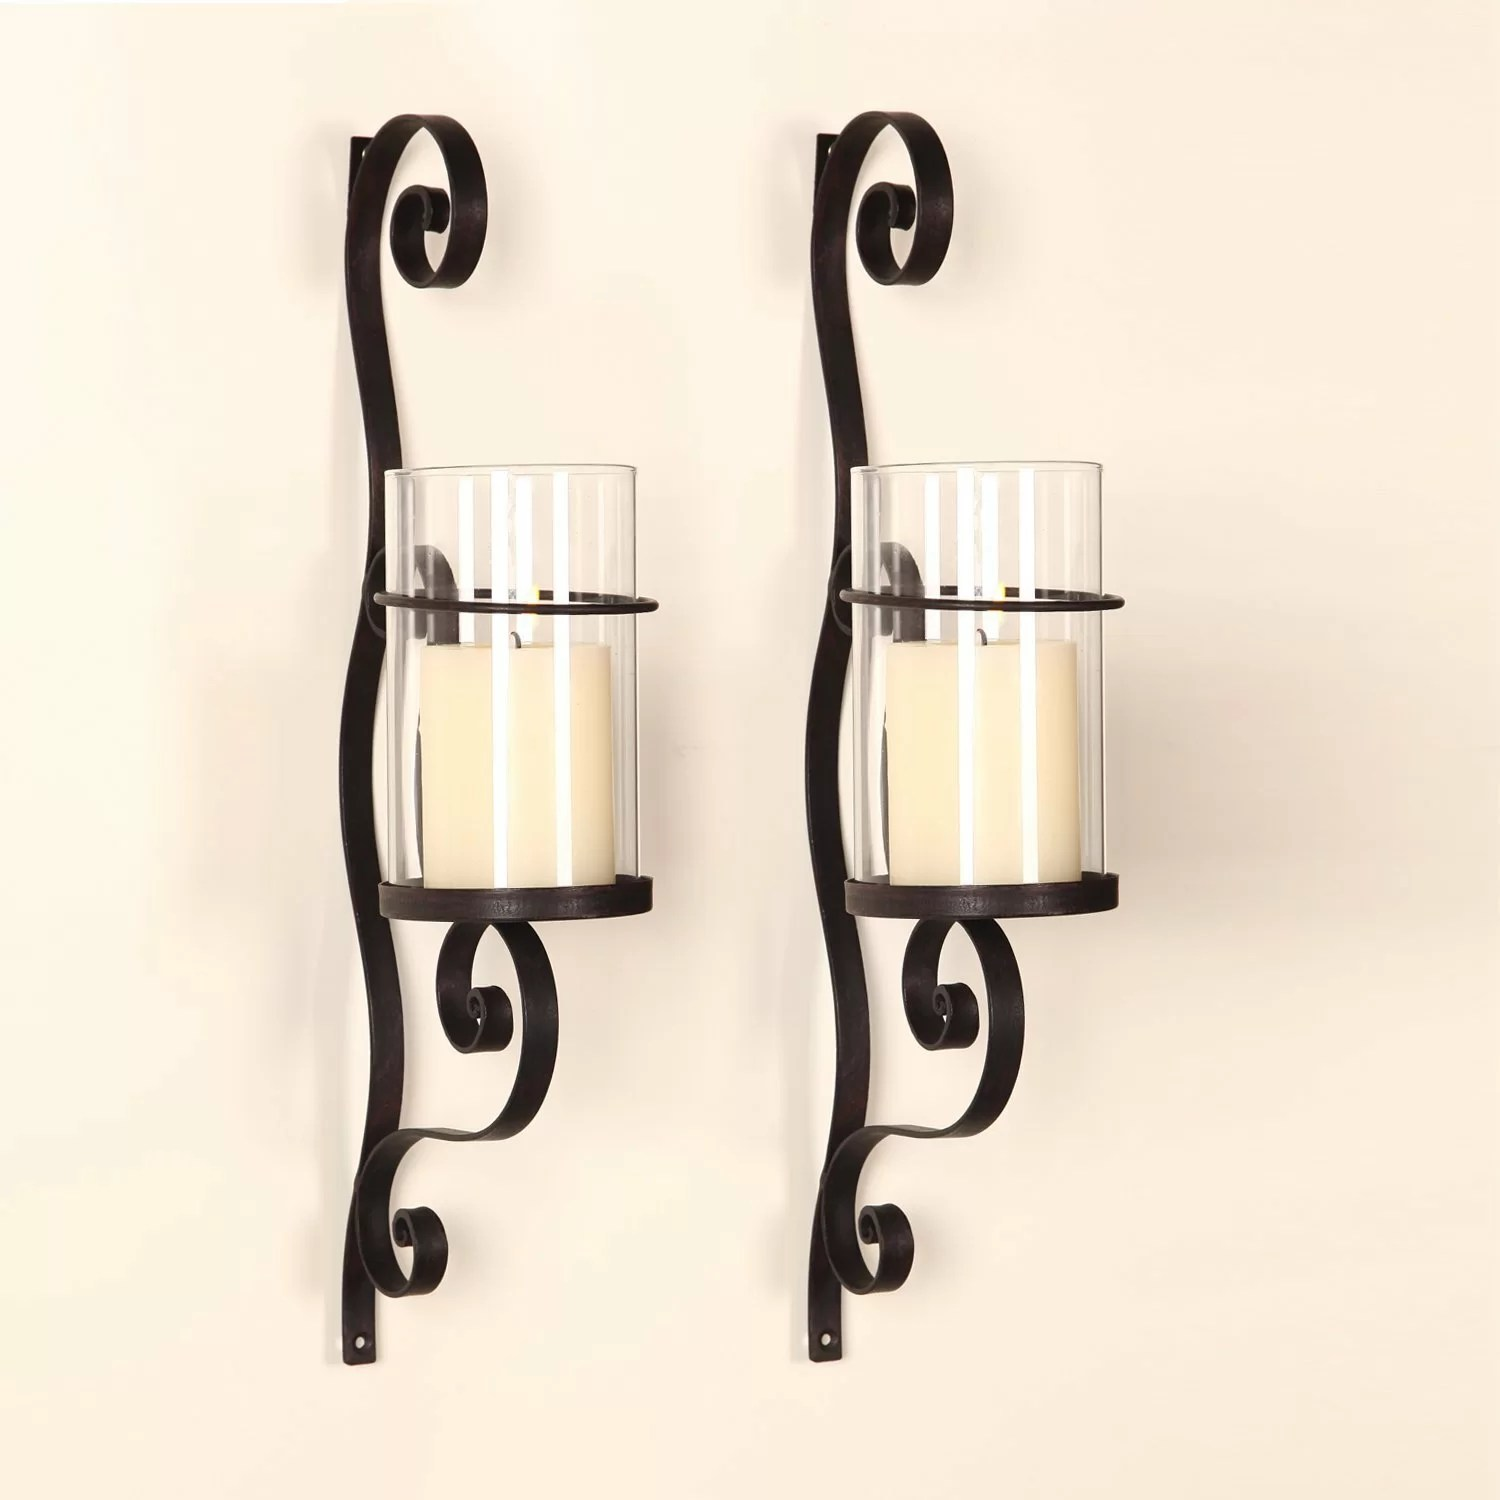 AdecoTrading Iron Wall Sconce Candle Holder & Reviews ... on Wall Sconces Candle Holders id=11223